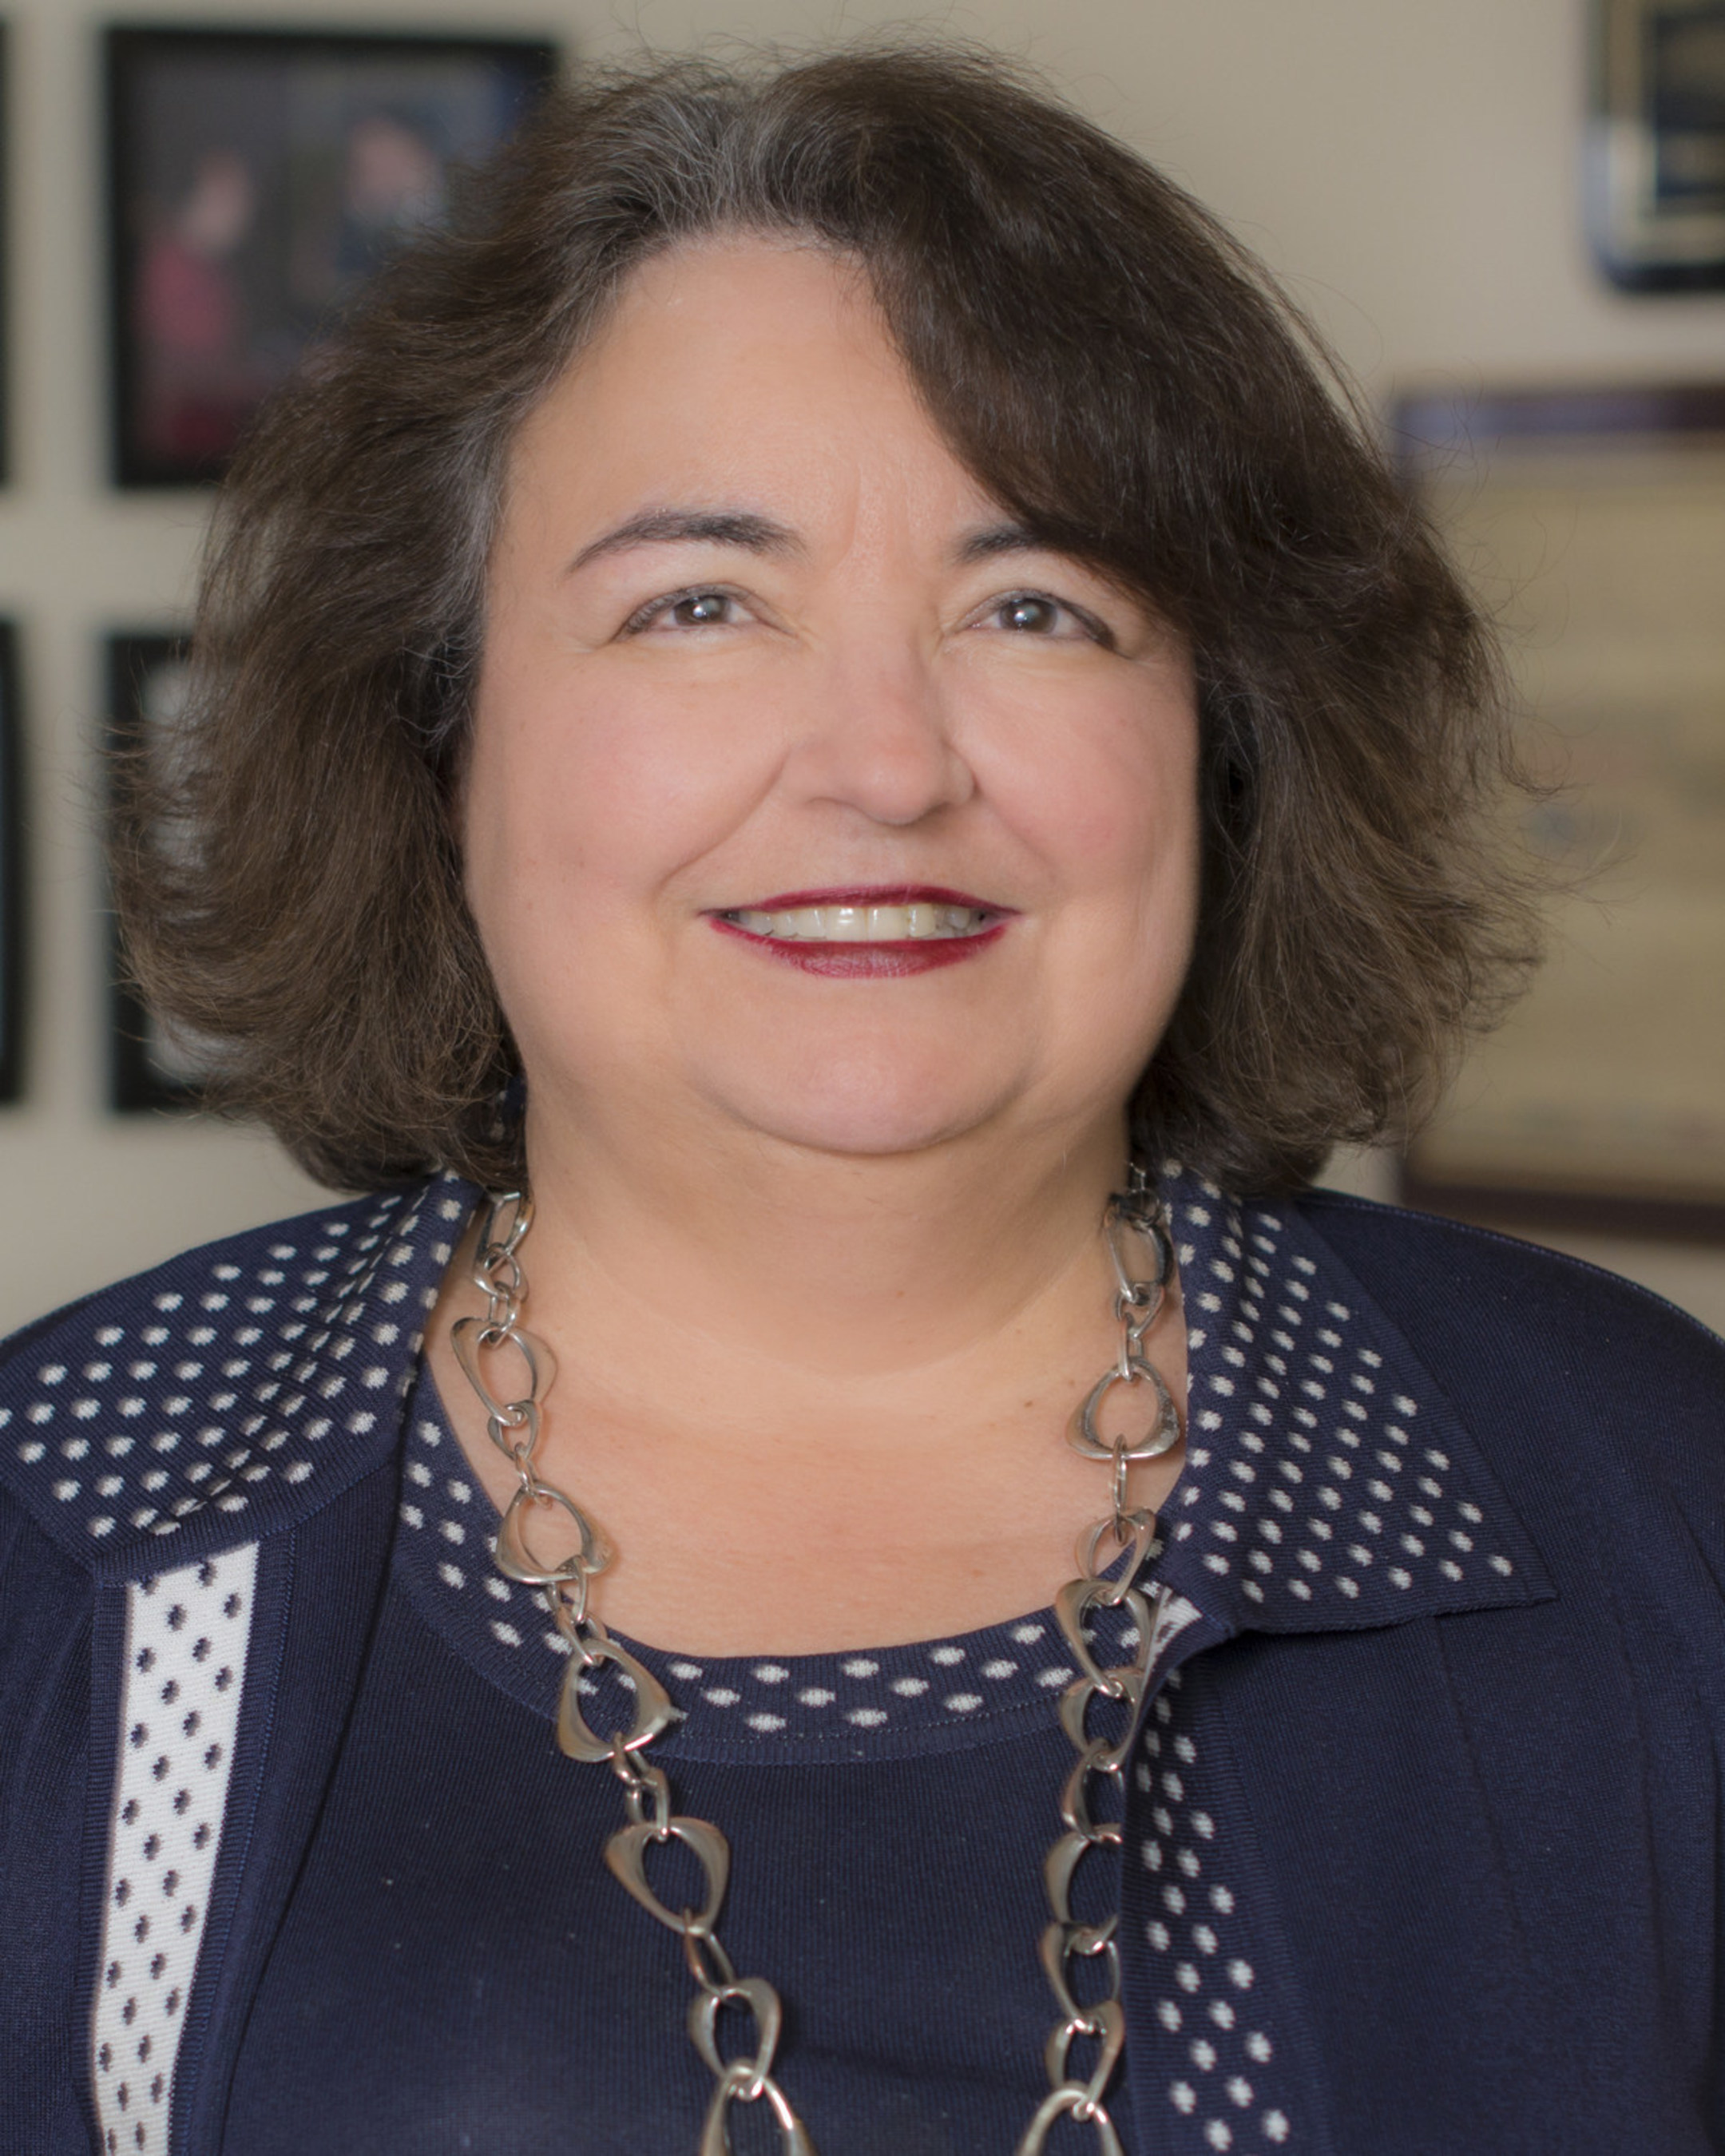 """Raquel """"Rocky"""" A. Rodriguez elected chair of Judicial Nominating Commission for Florida's Third District Court of Appeal"""